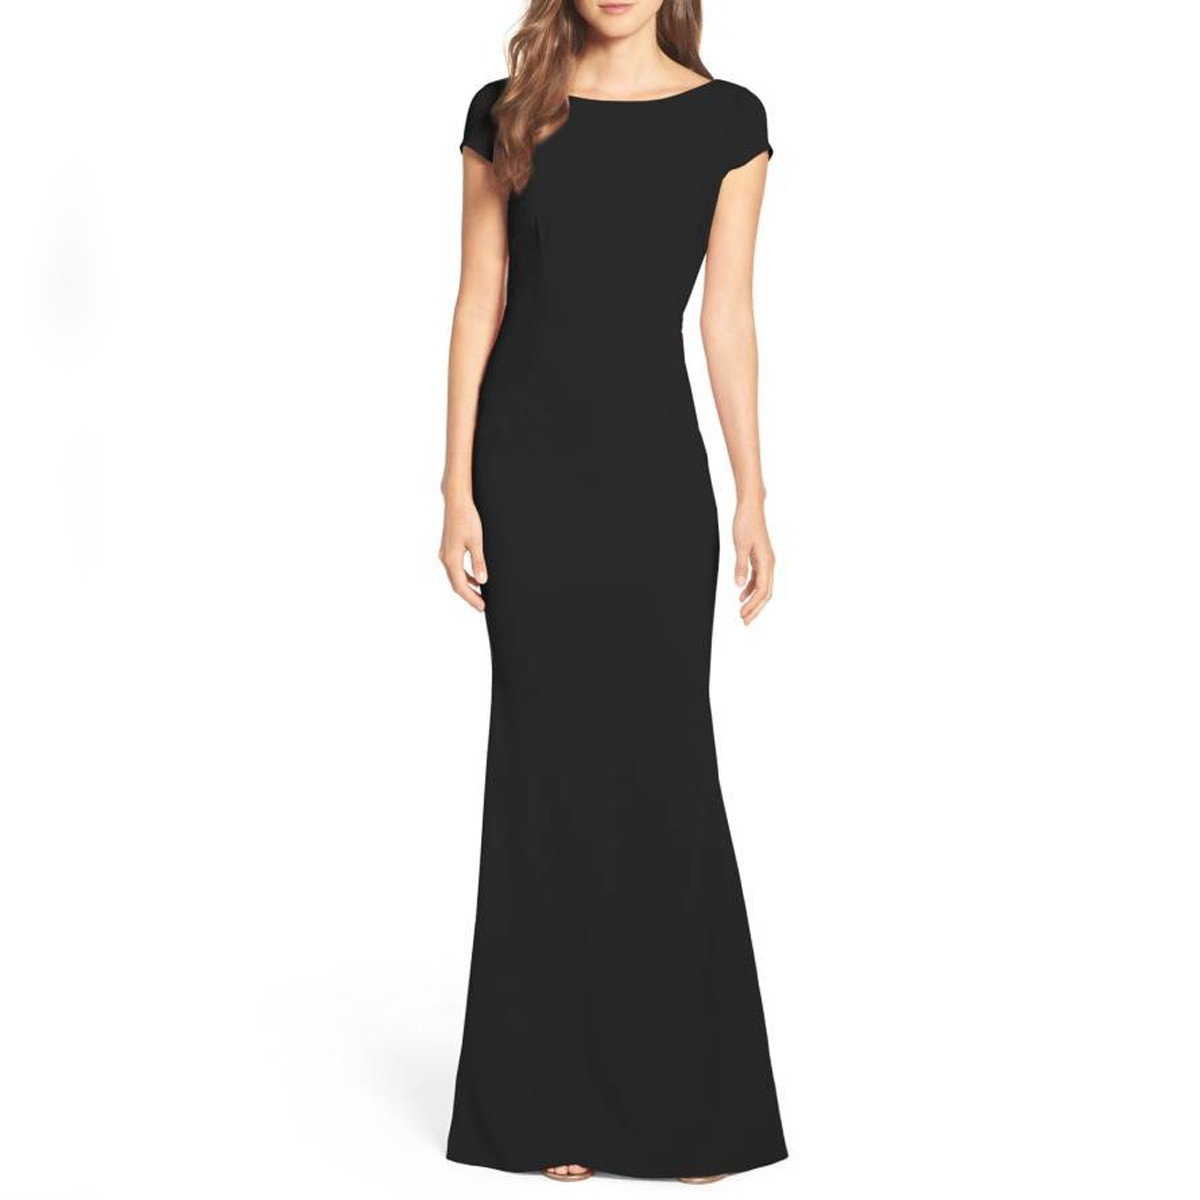 Woman wearing black mother of the bride dress photo